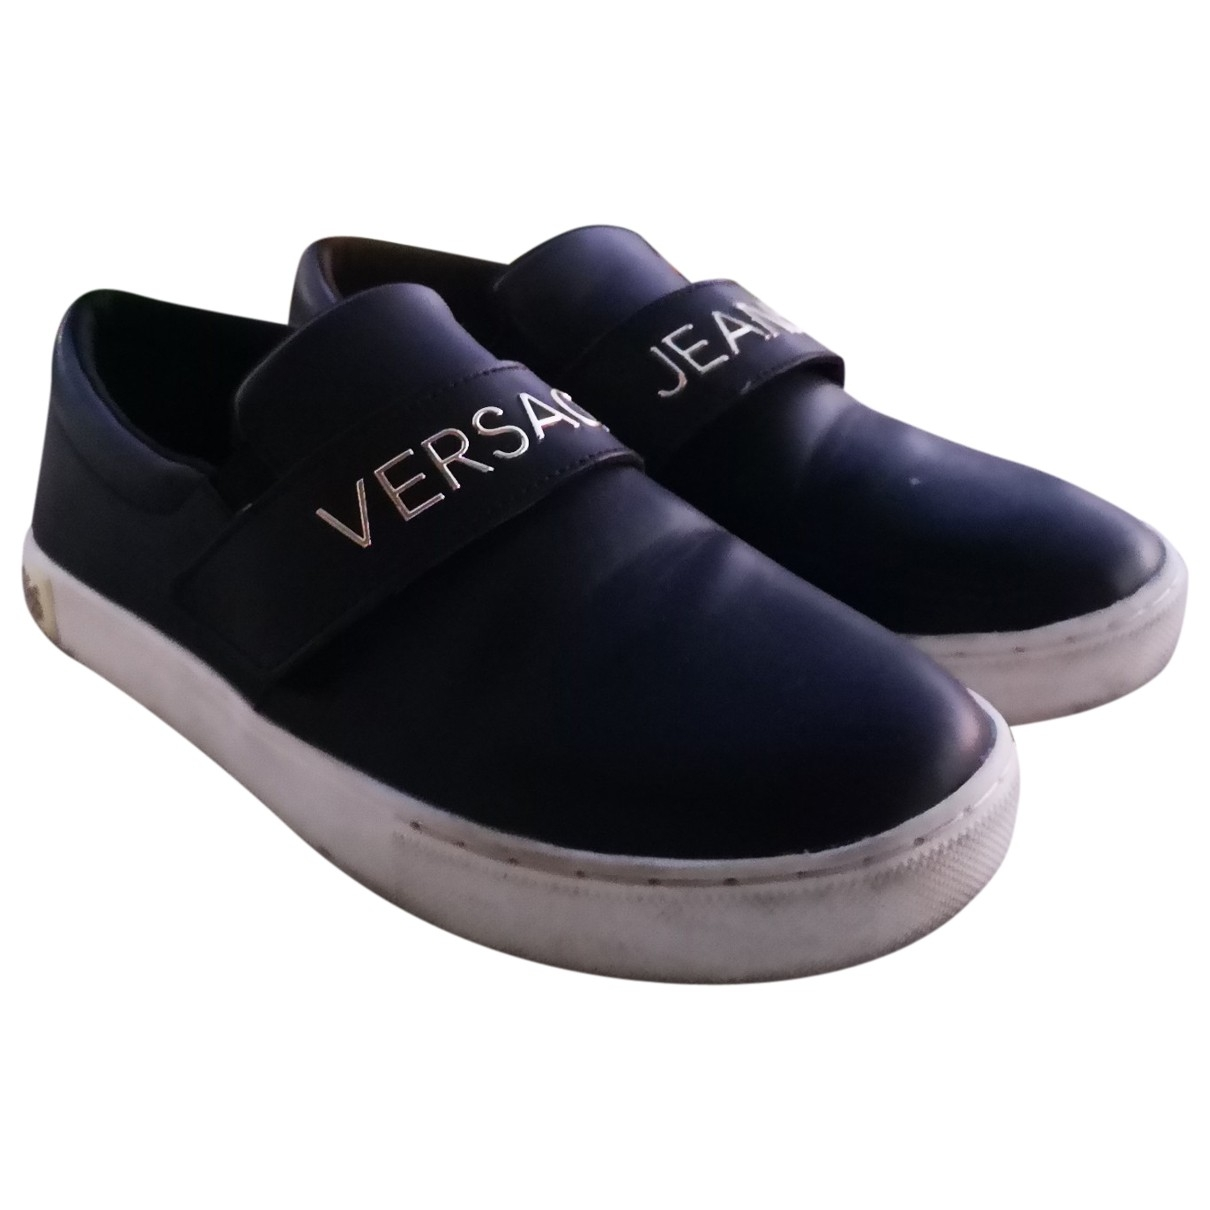 Versace Jeans \N Black Patent leather Trainers for Women 38 EU